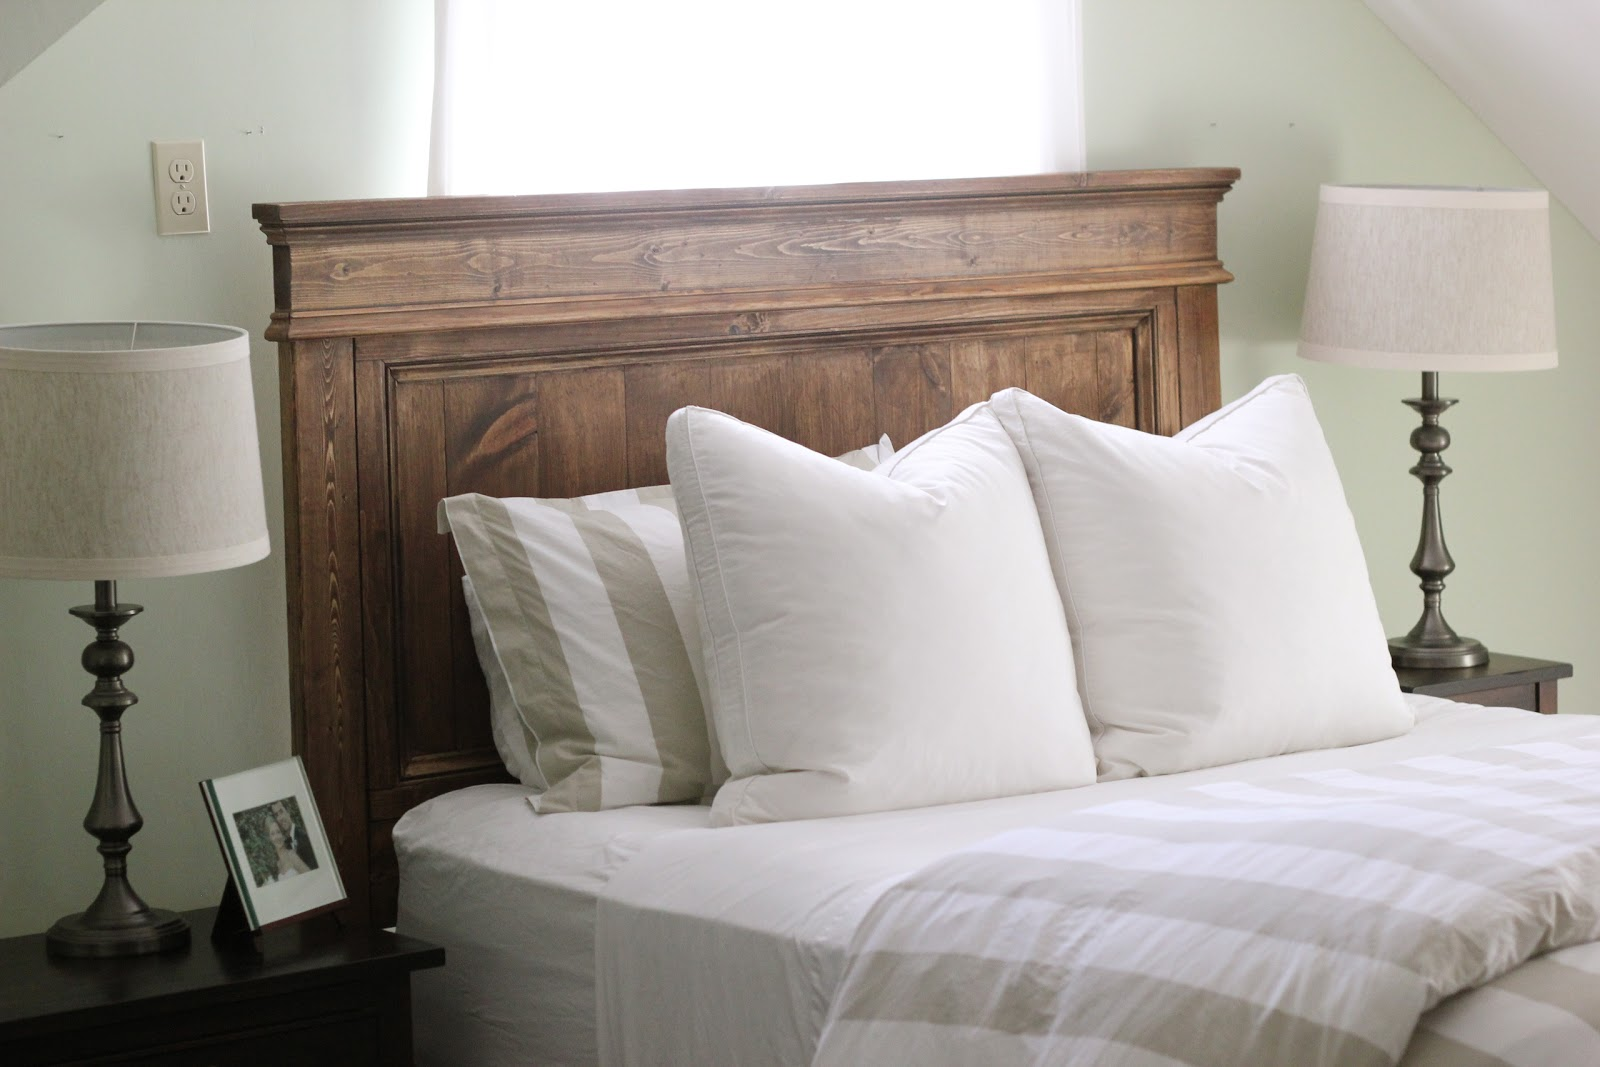 DIY Wooden Bed Headboard